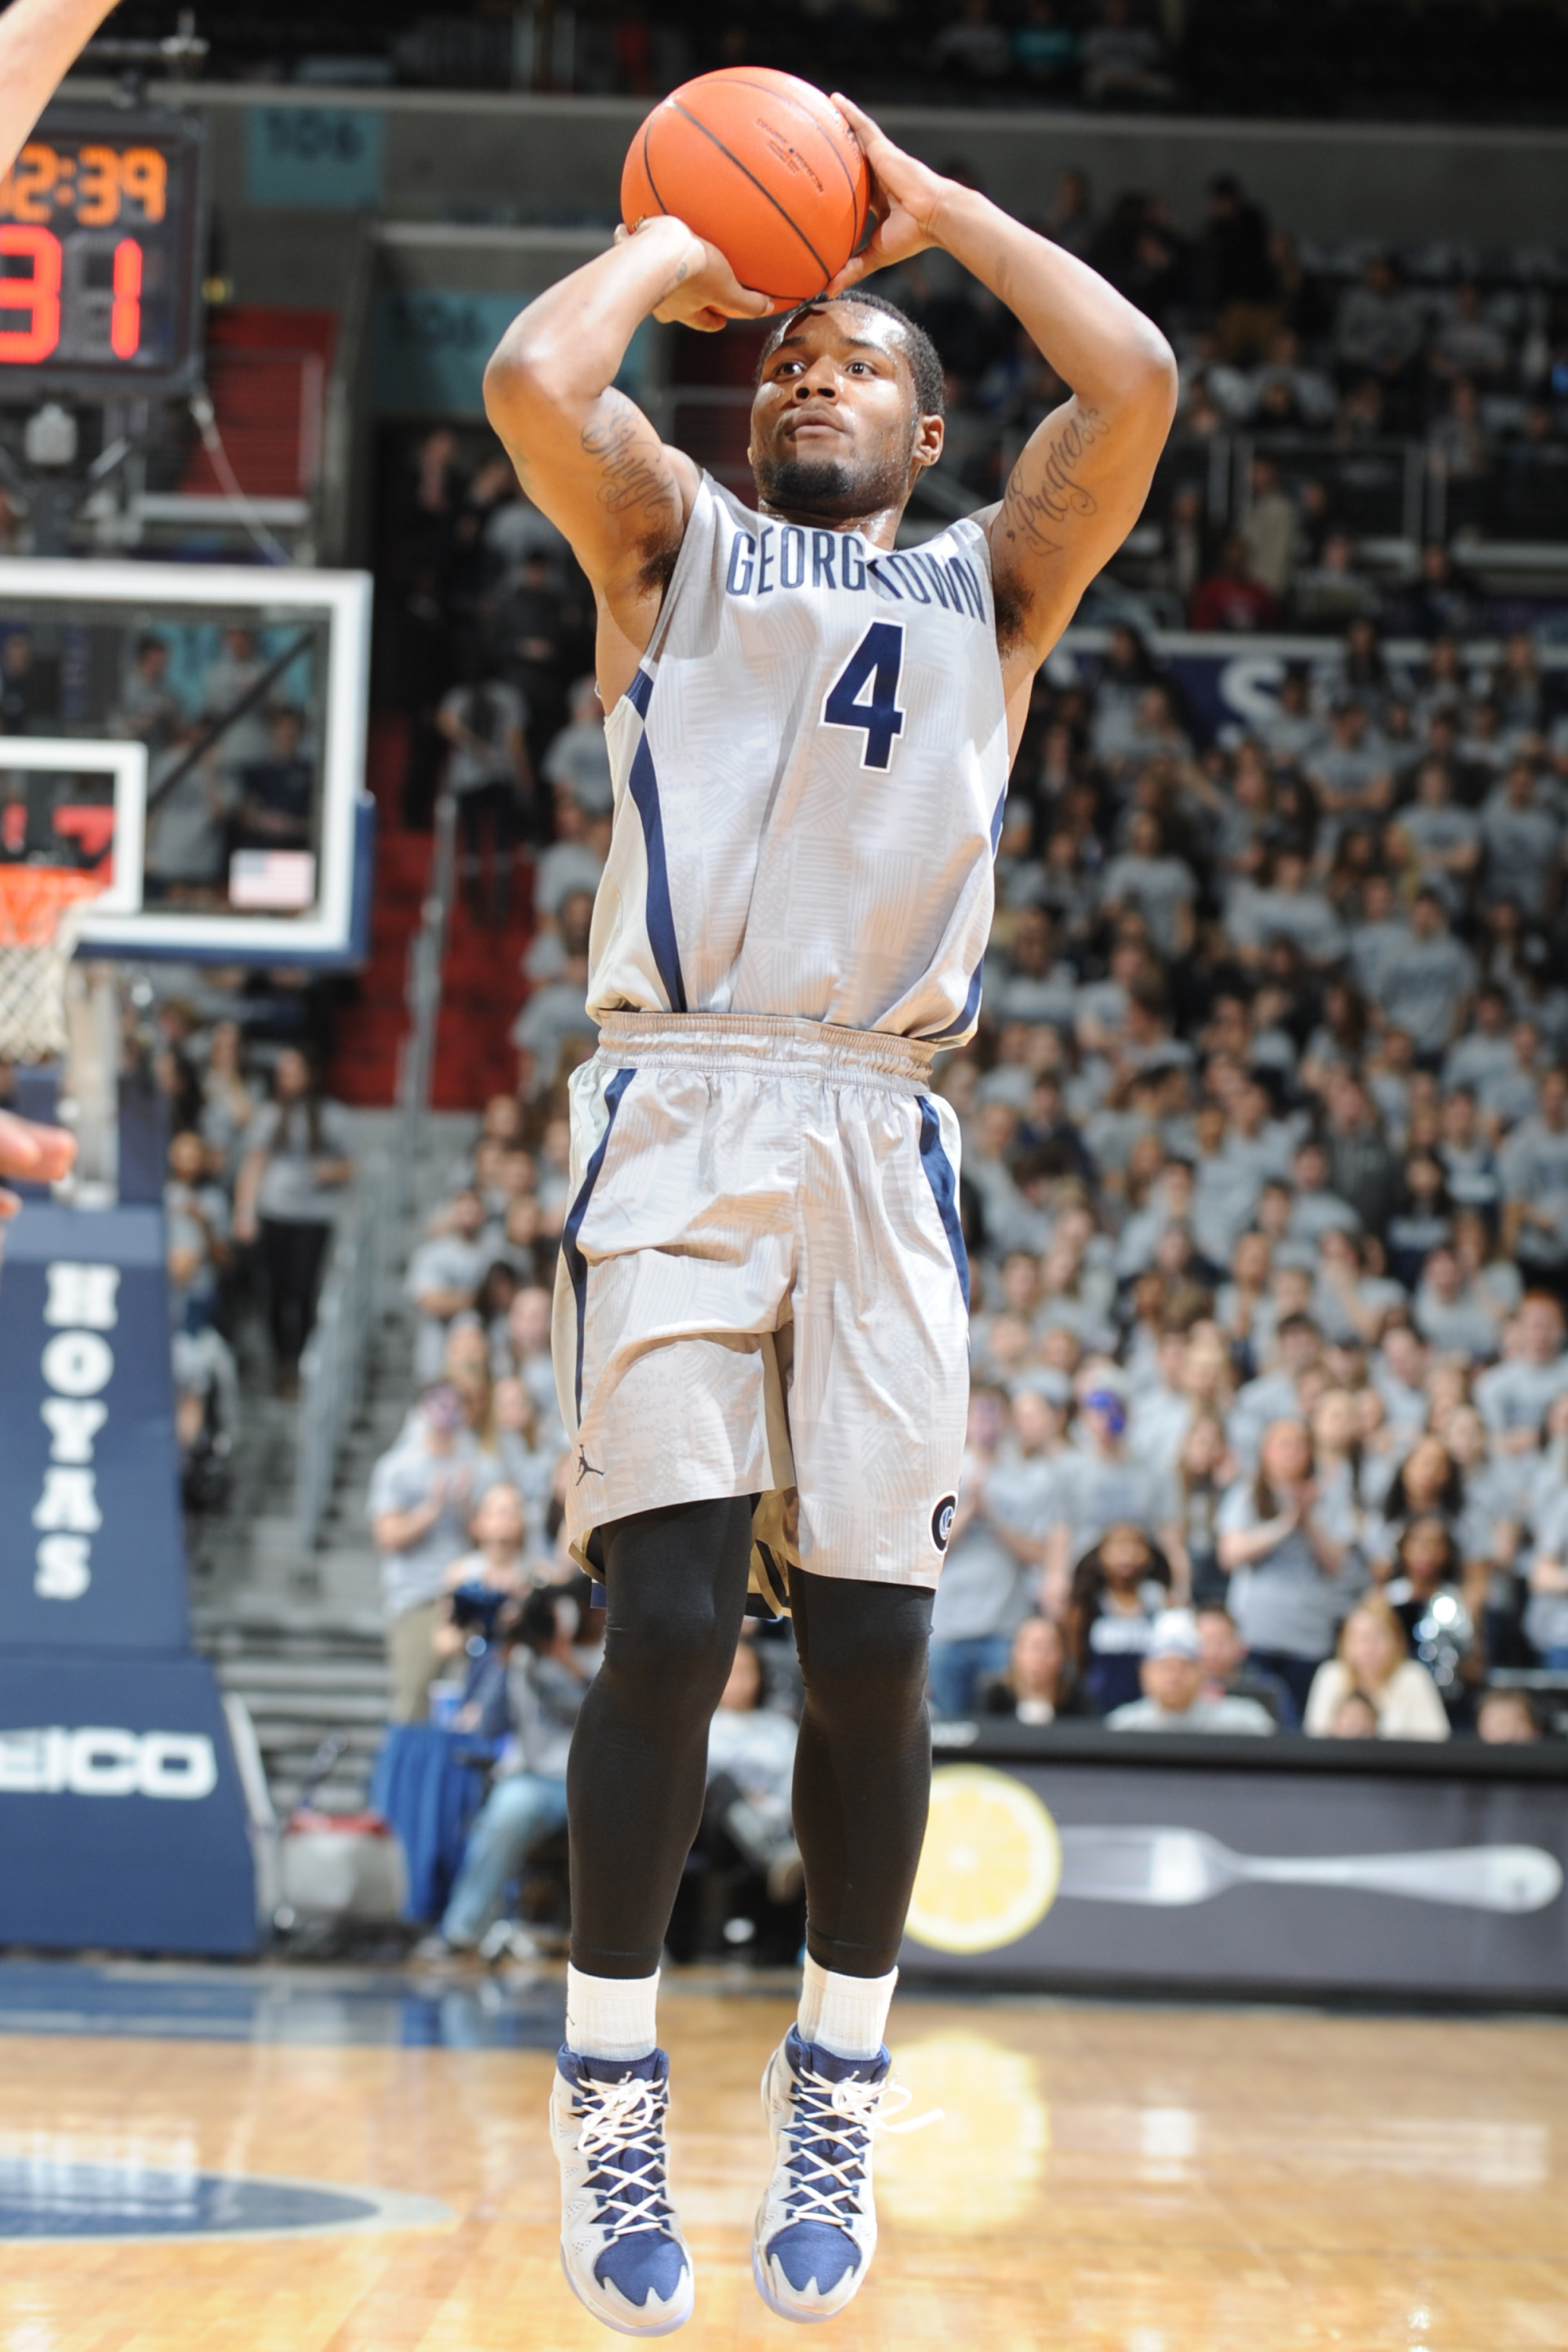 Georgetown University sophomore men's basketball player D'Vauntes Smith-Rivera (Indianapolis, Ind./North Central/Oak Hill),was named to the BIG EAST Weekly Honor Roll on Monday.  This is the fifth time this season that Smith-Rivera has been selected to the honor roll.